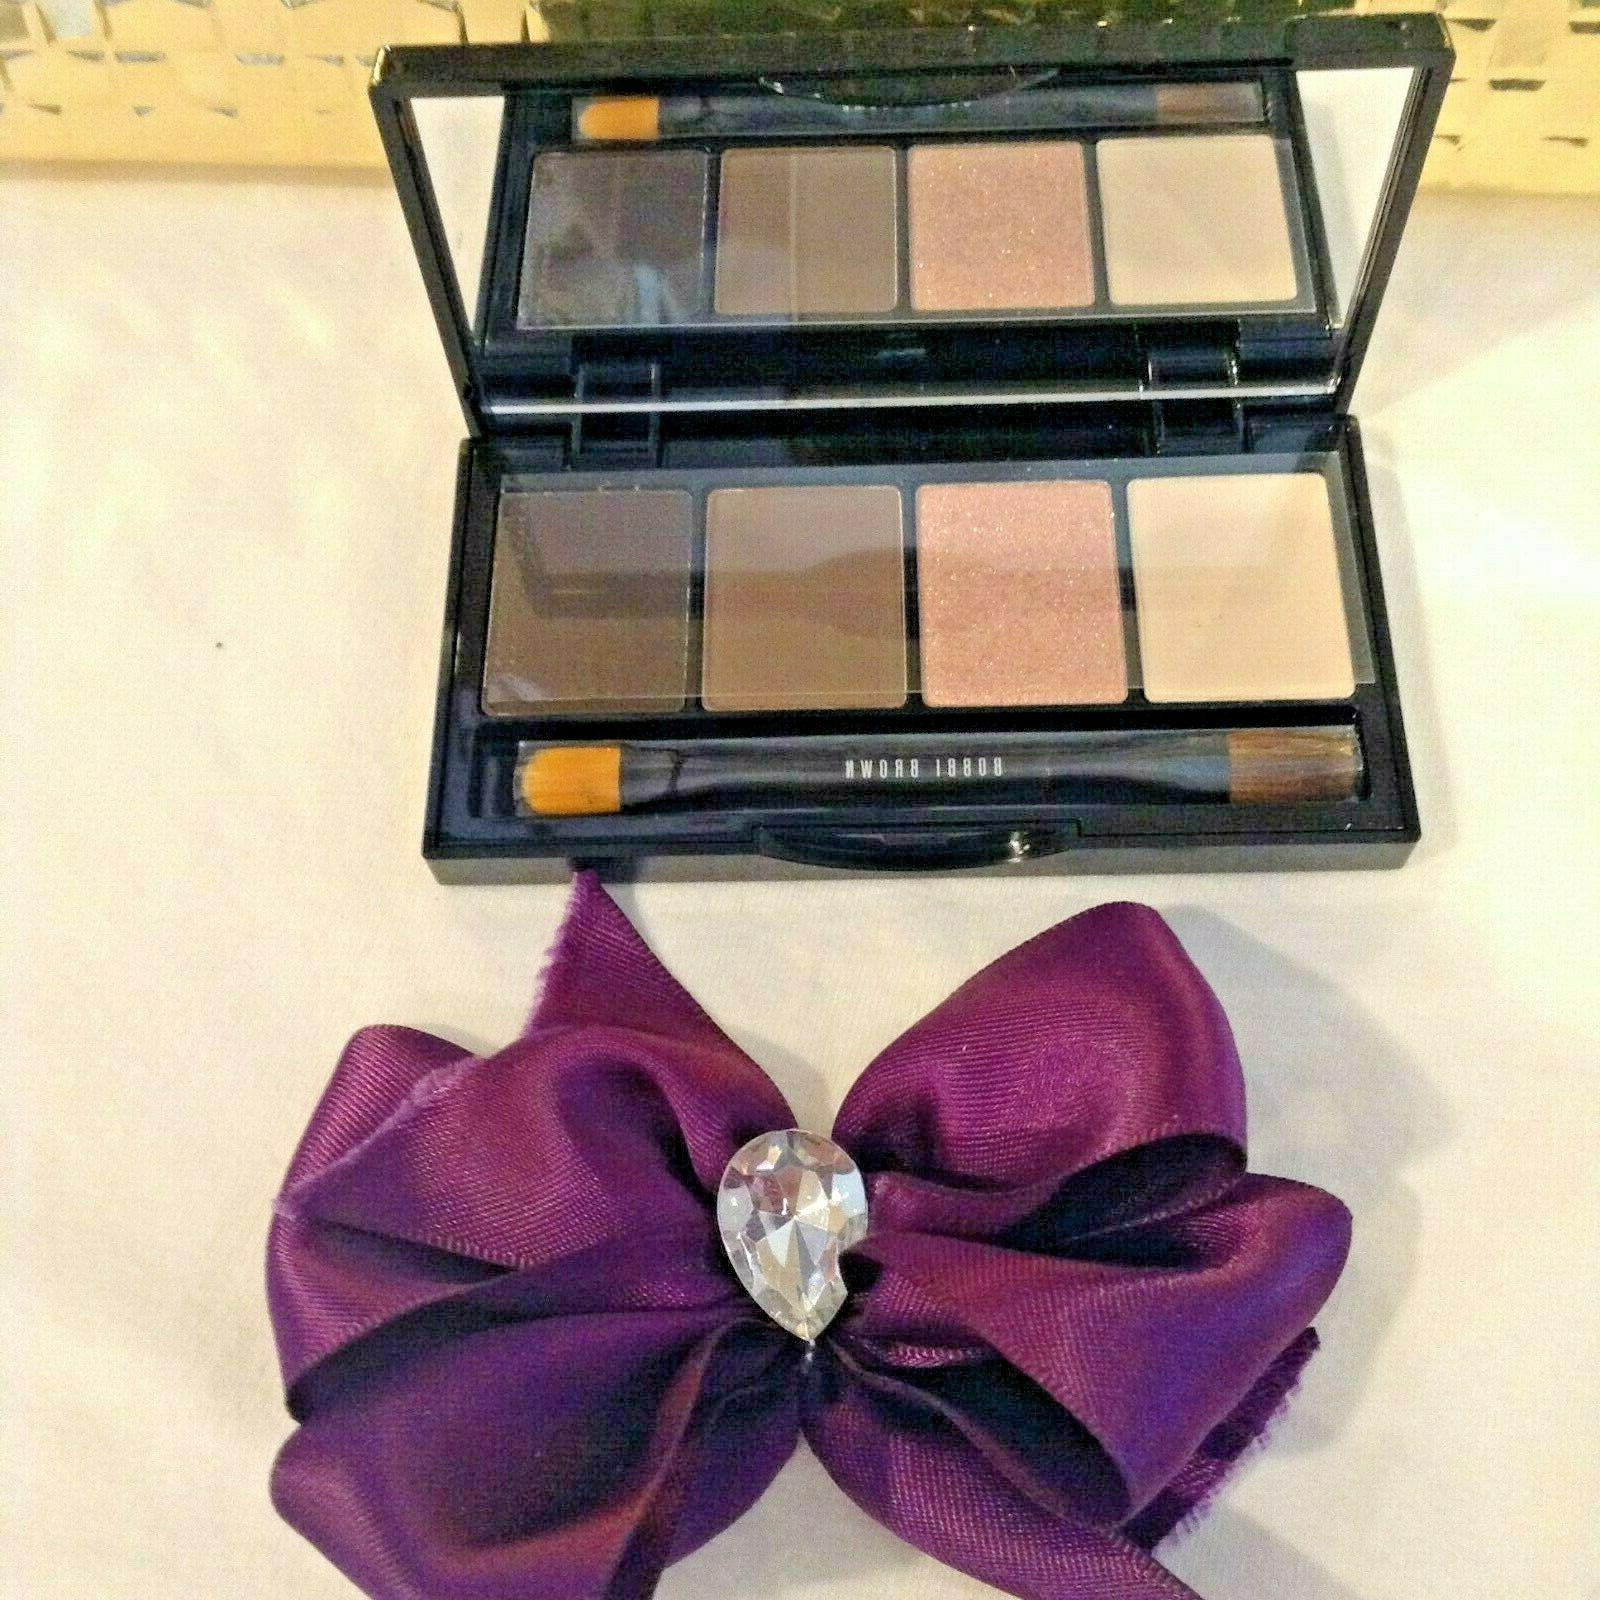 ready in 5 eye shadow palette cream